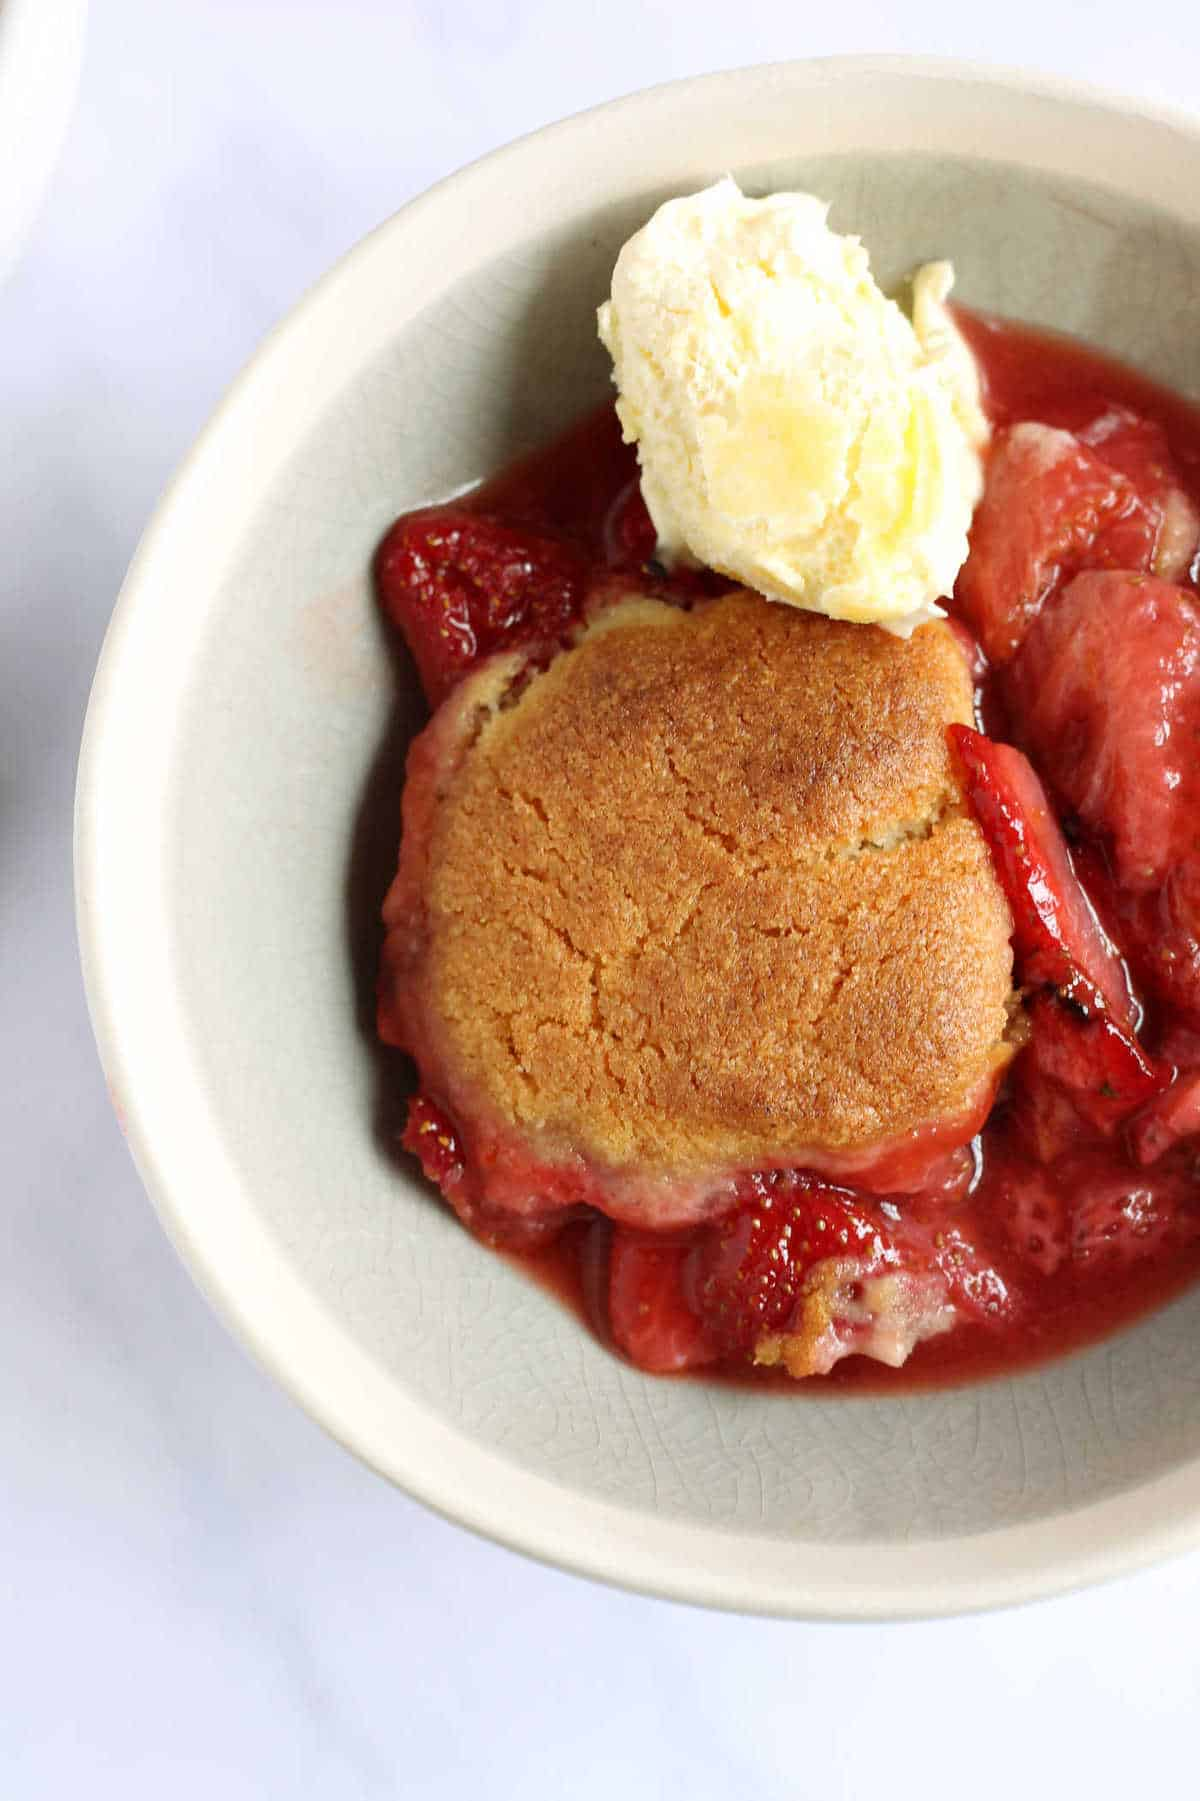 An overhead shot of a bowl of strawberry cobbler with clotted cream